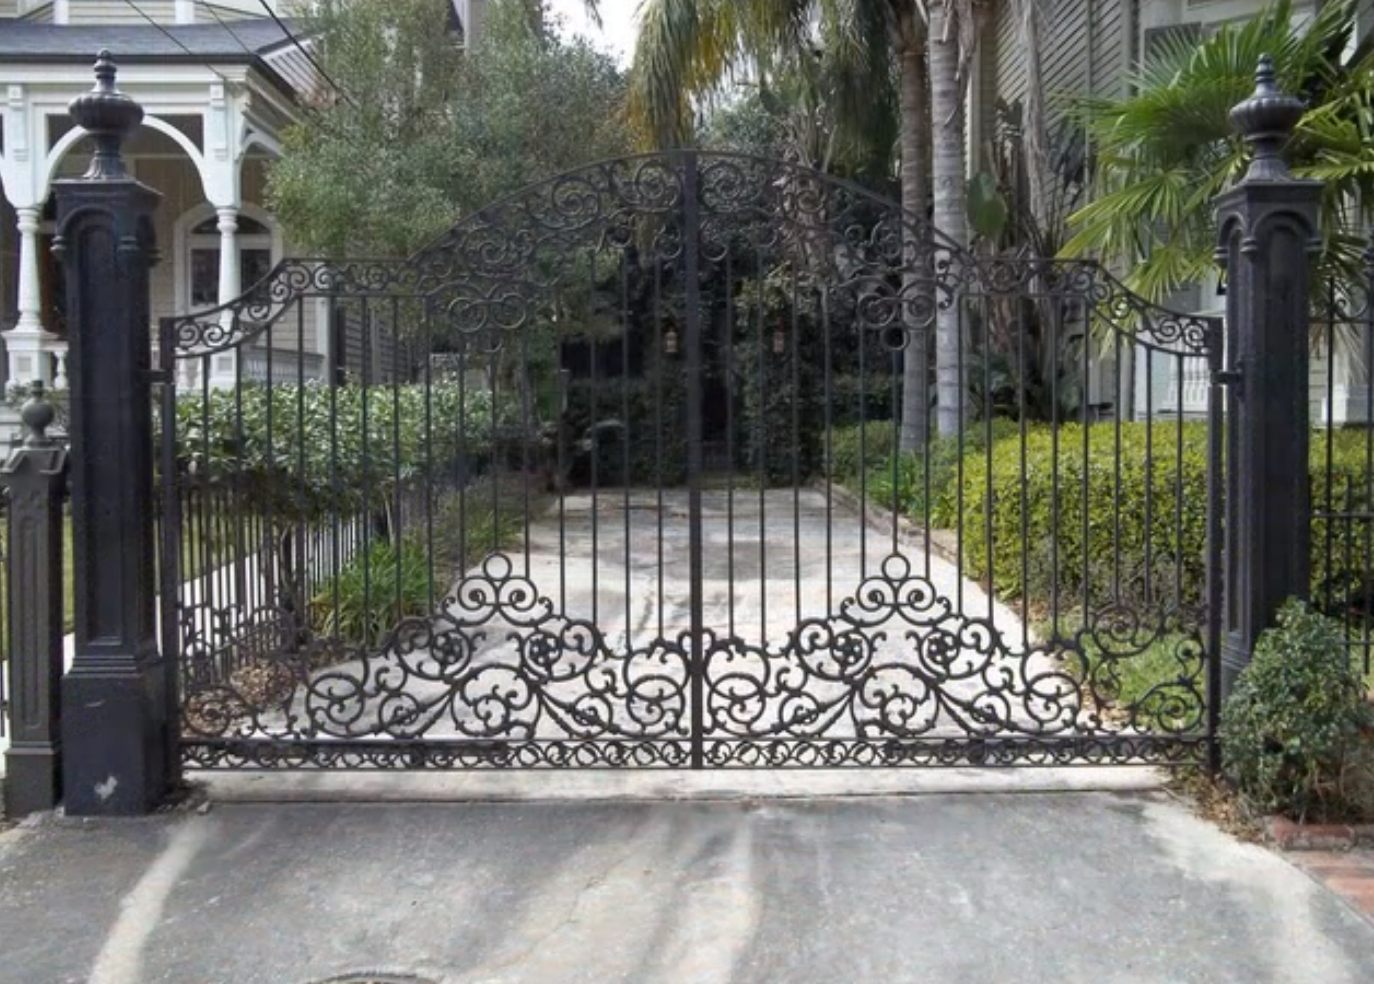 Ornamental wrought iron gates - Inspiring Beautiful Wrought Iron Driveway Gate With Two Giant Fence